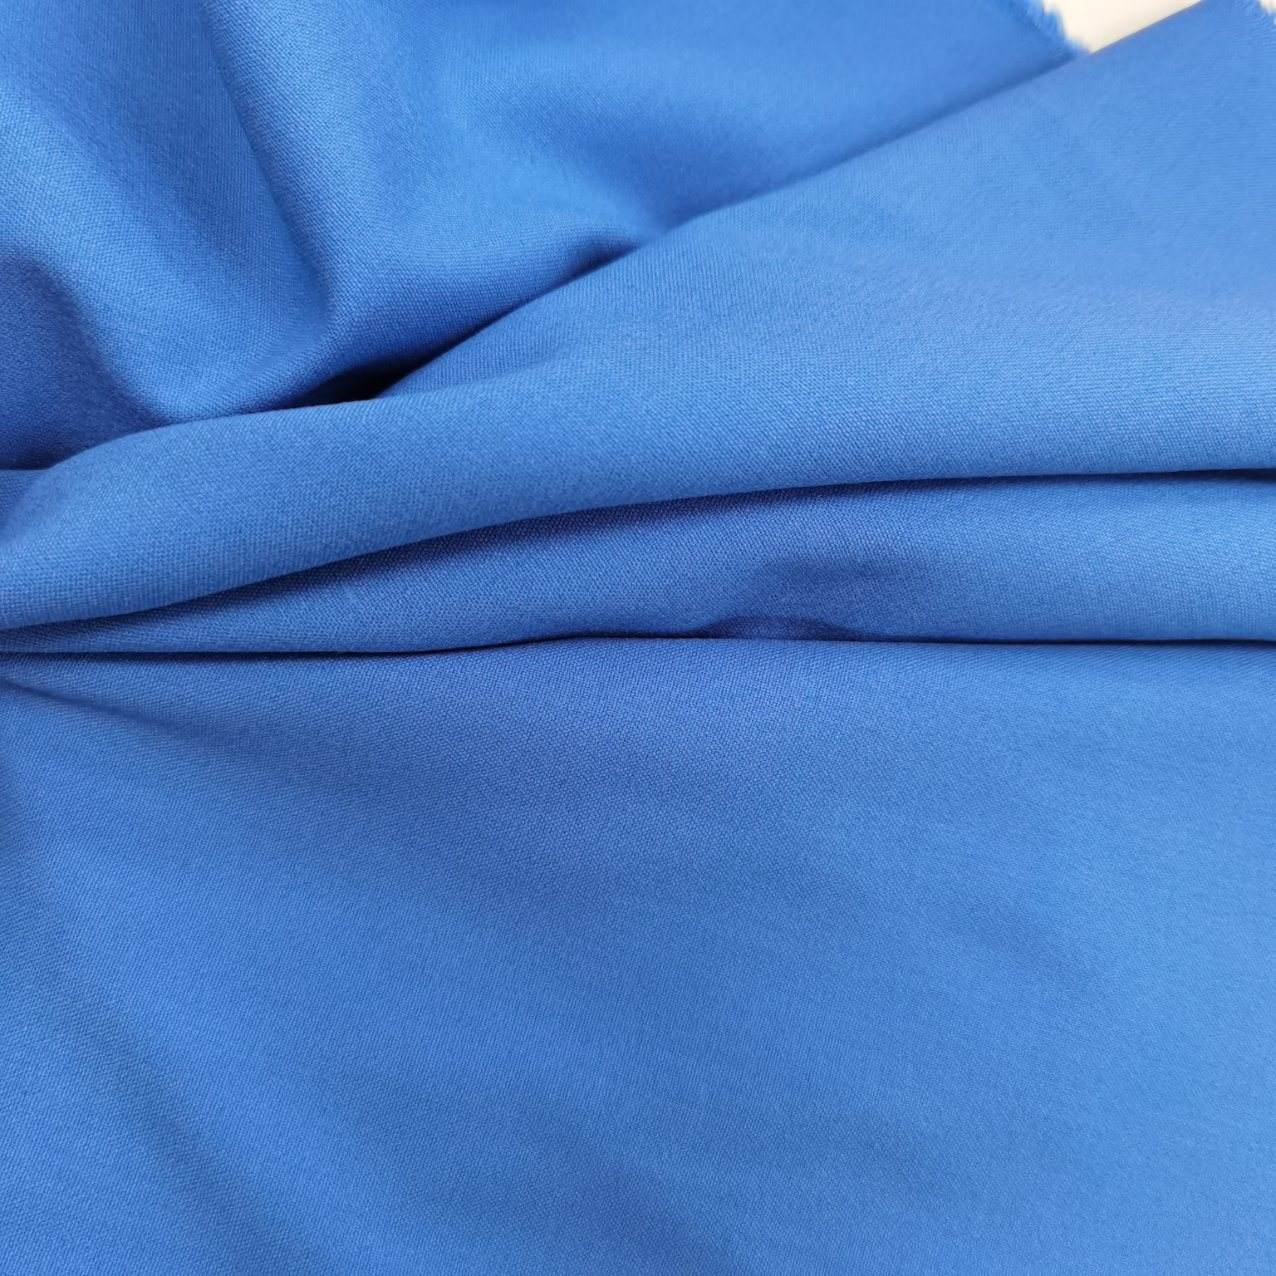 TR 4 way Stretch Polyester Rayon Spandex 50 Time Washed 99% Antimicrobial Medical Agion Wicking Hospital Fabric for Scrubs